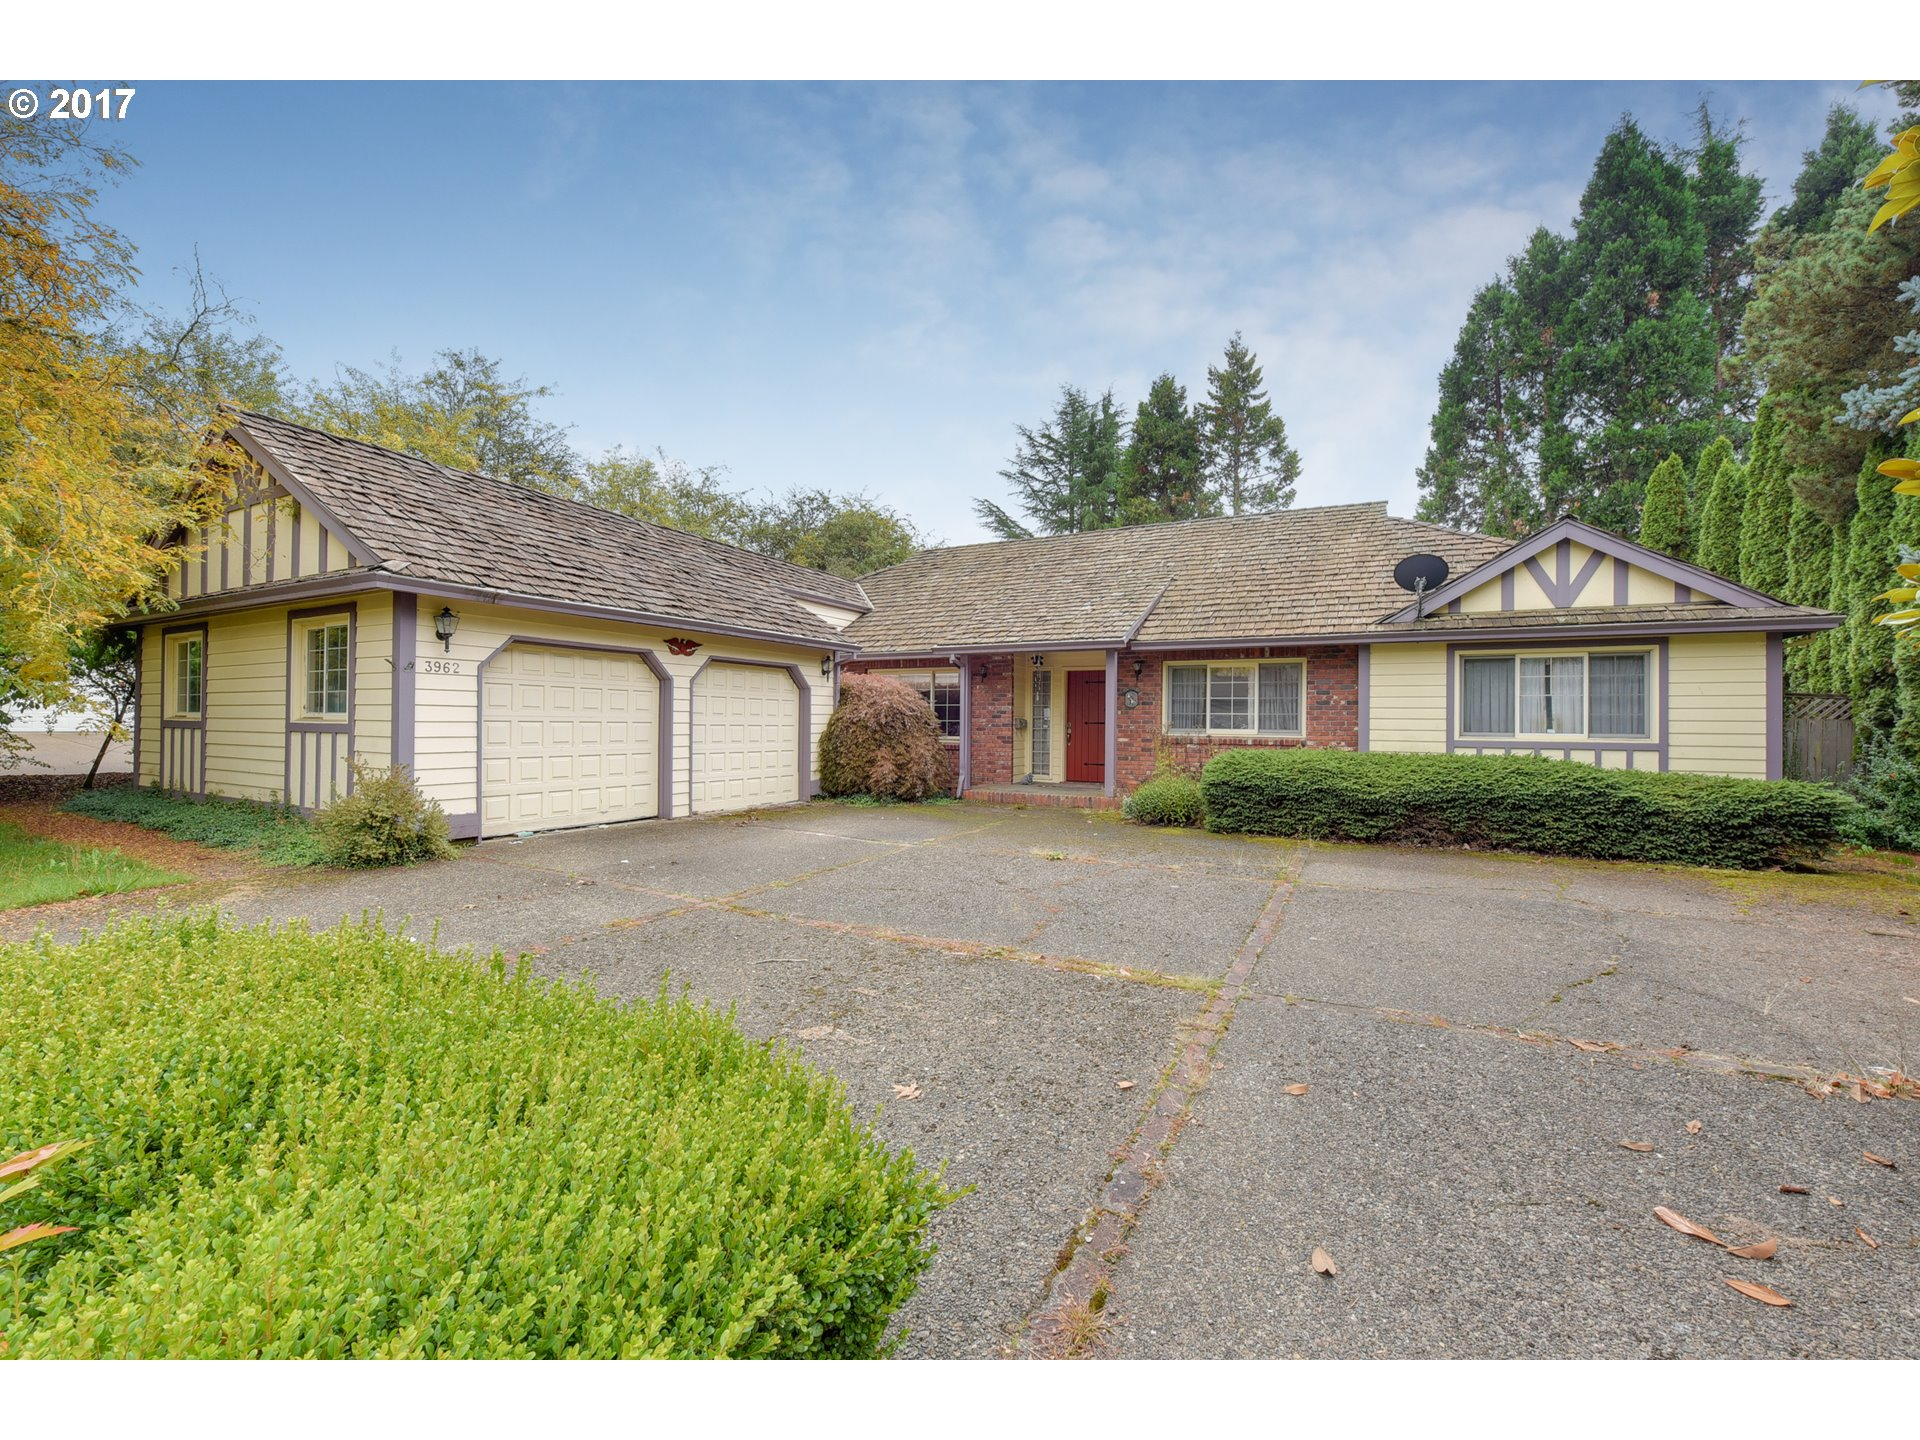 3962 BASS LN, Lake Oswego OR 97034